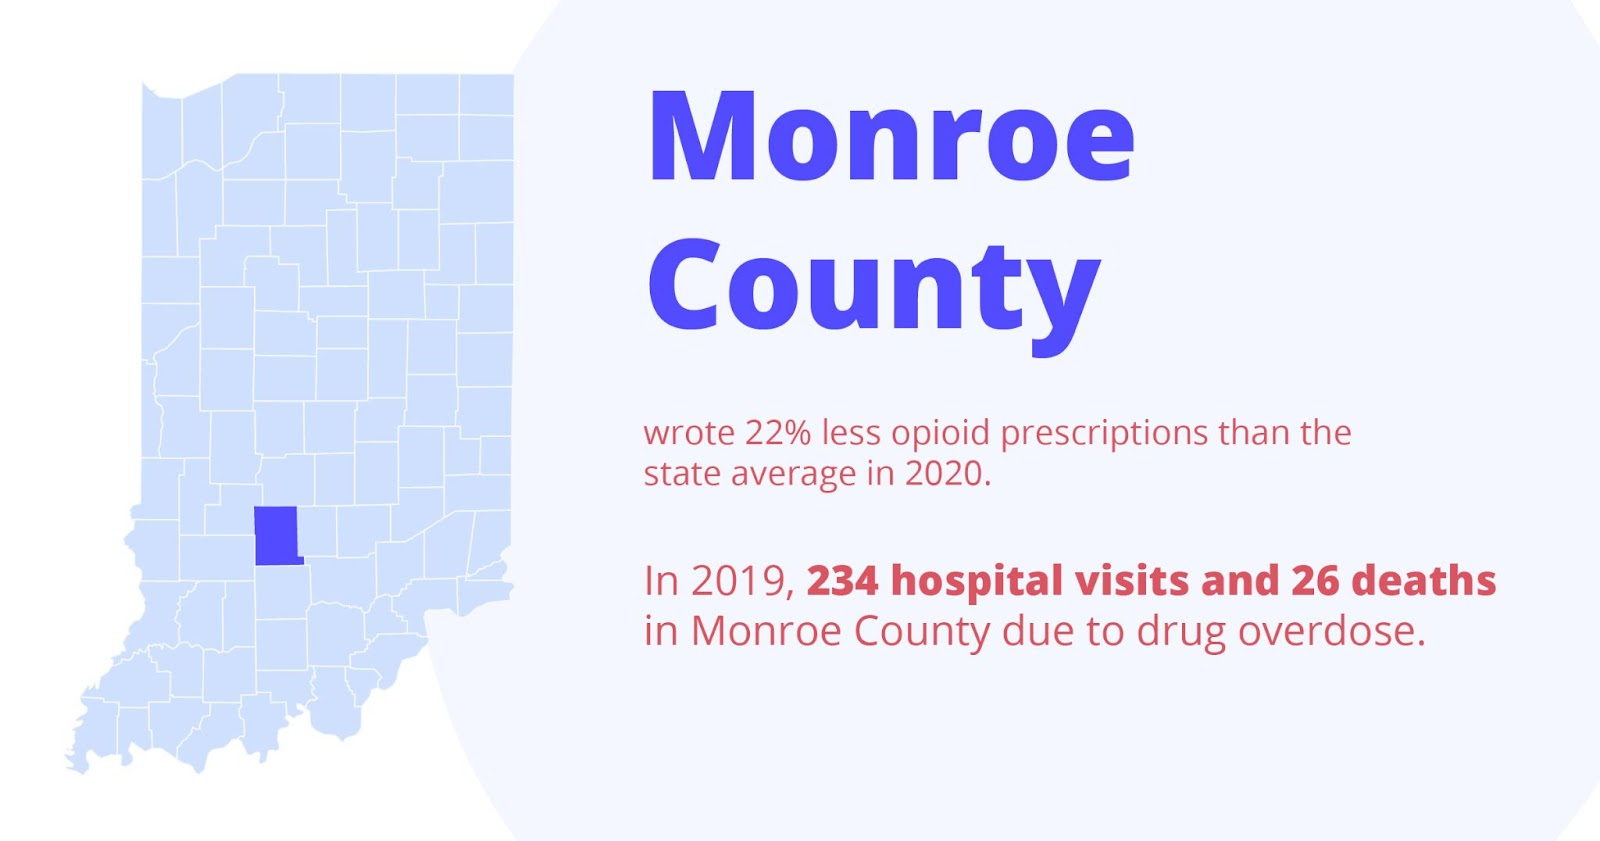 Monroe county wrote 22% less opioid prescriptions than the state average in 2020. In 2019, 234 hospital visits and 26 deaths in monroe county due to drug overdose